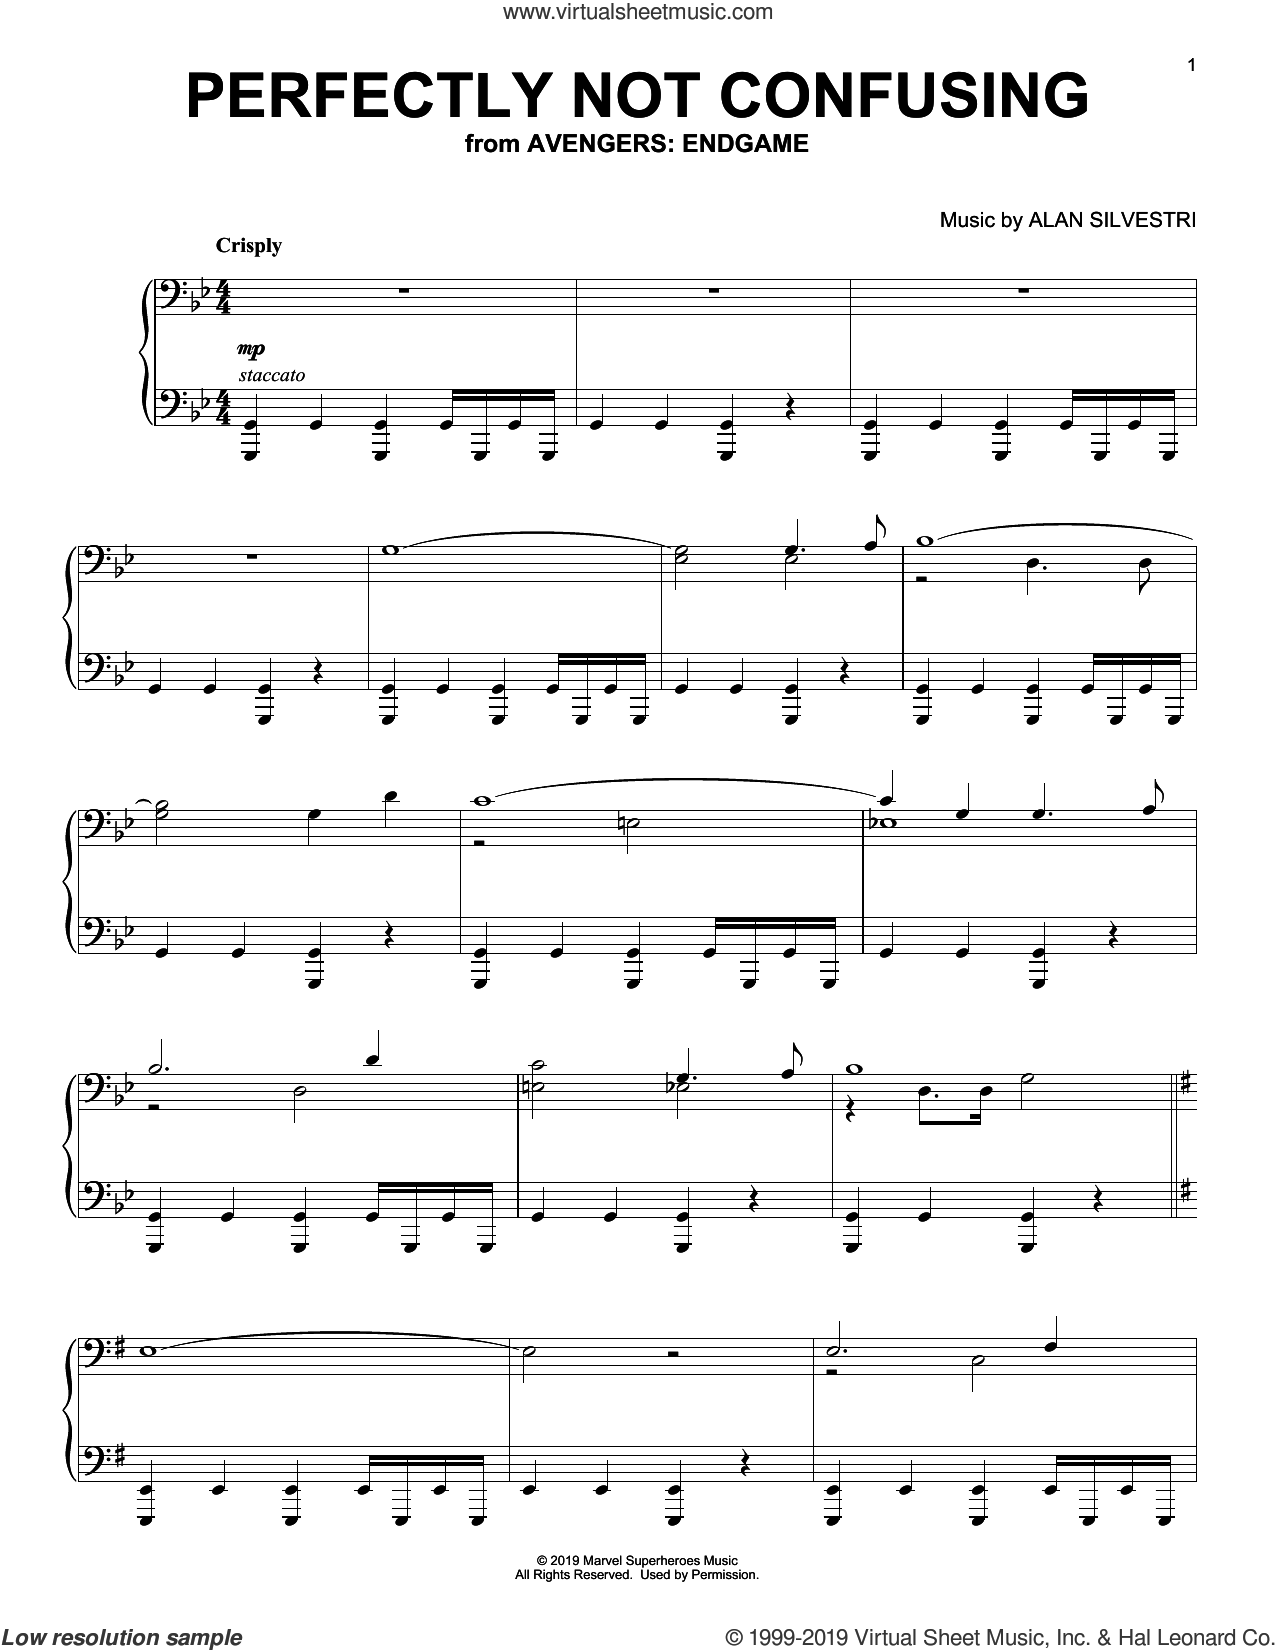 Perfectly Not Confusing (from Avengers: Endgame) sheet music for piano solo by Alan Silvestri, intermediate skill level